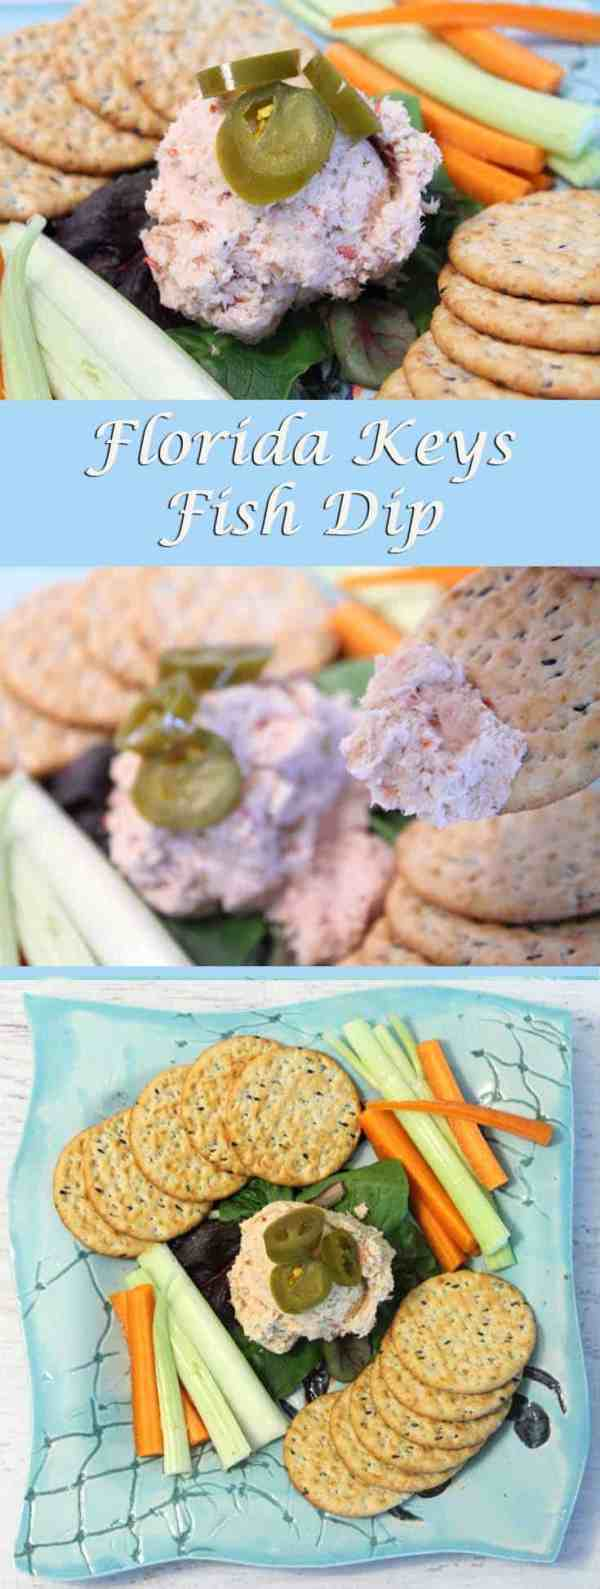 Florida Keys Fish Dip pin|2CookinMamas An easy fish dip to make with all the flavor of the Florida Keys.